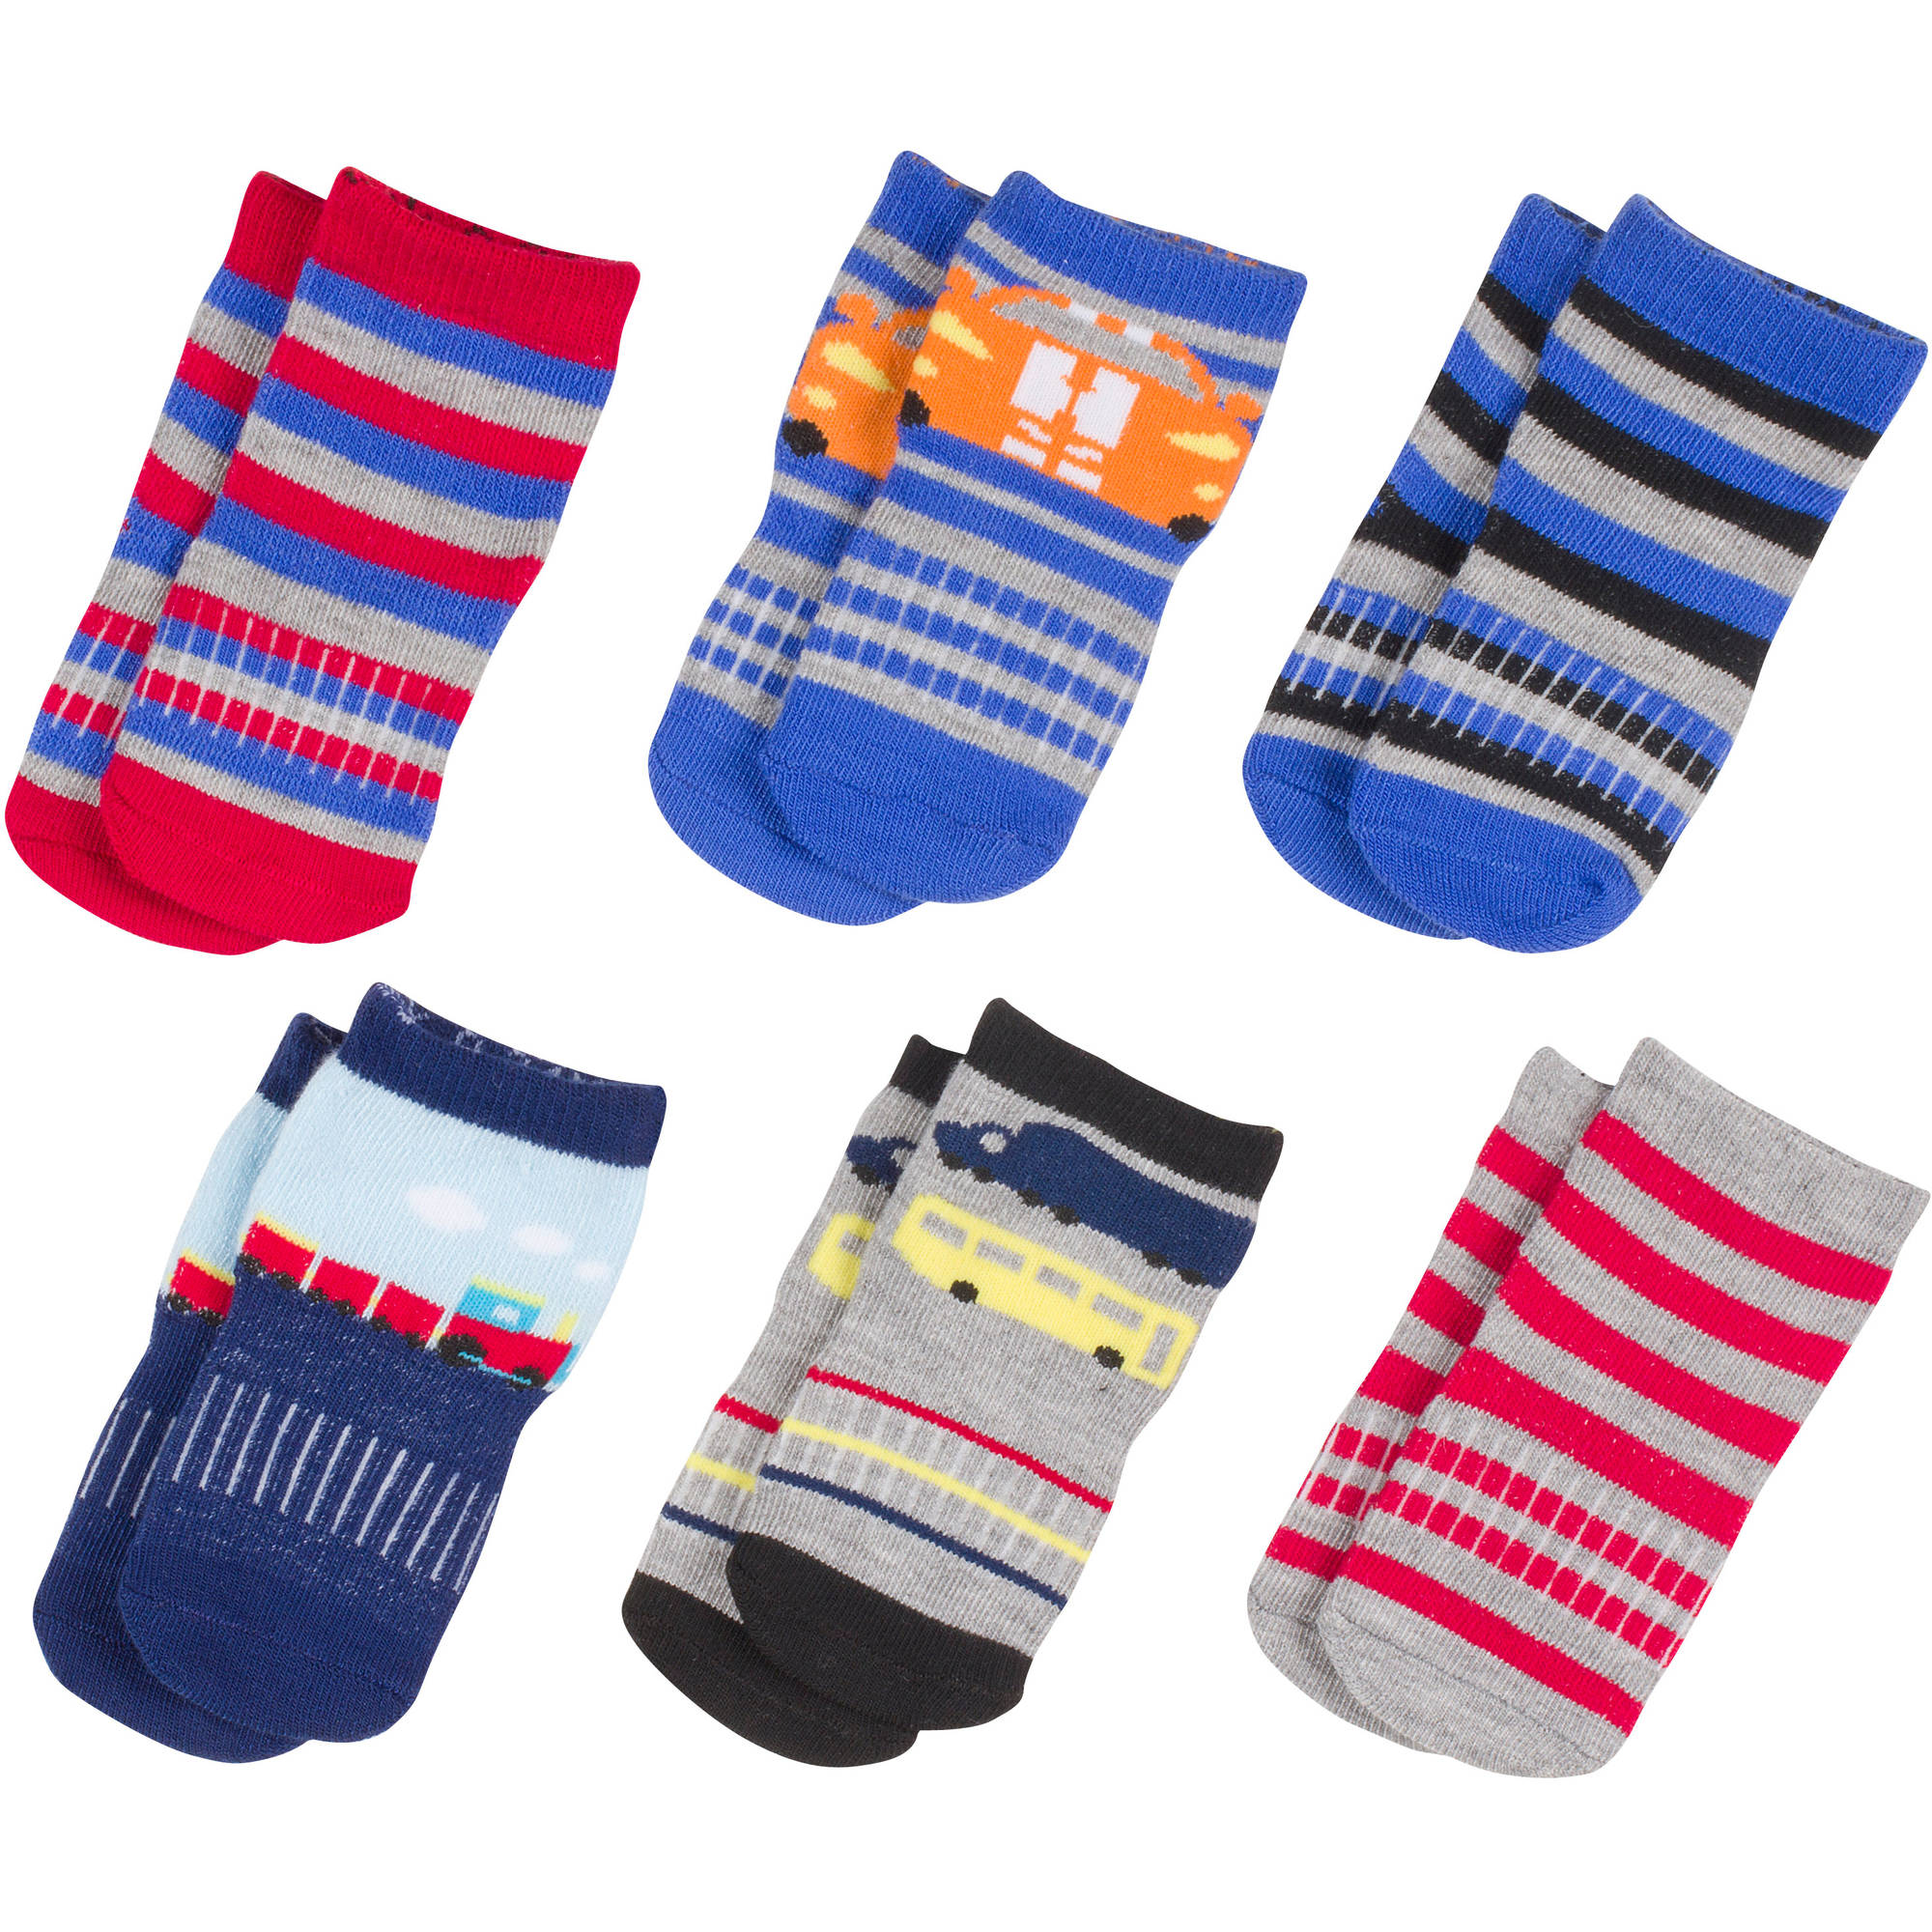 Growing Socks by Peds, Boy Infant, Cars, 6 Pairs